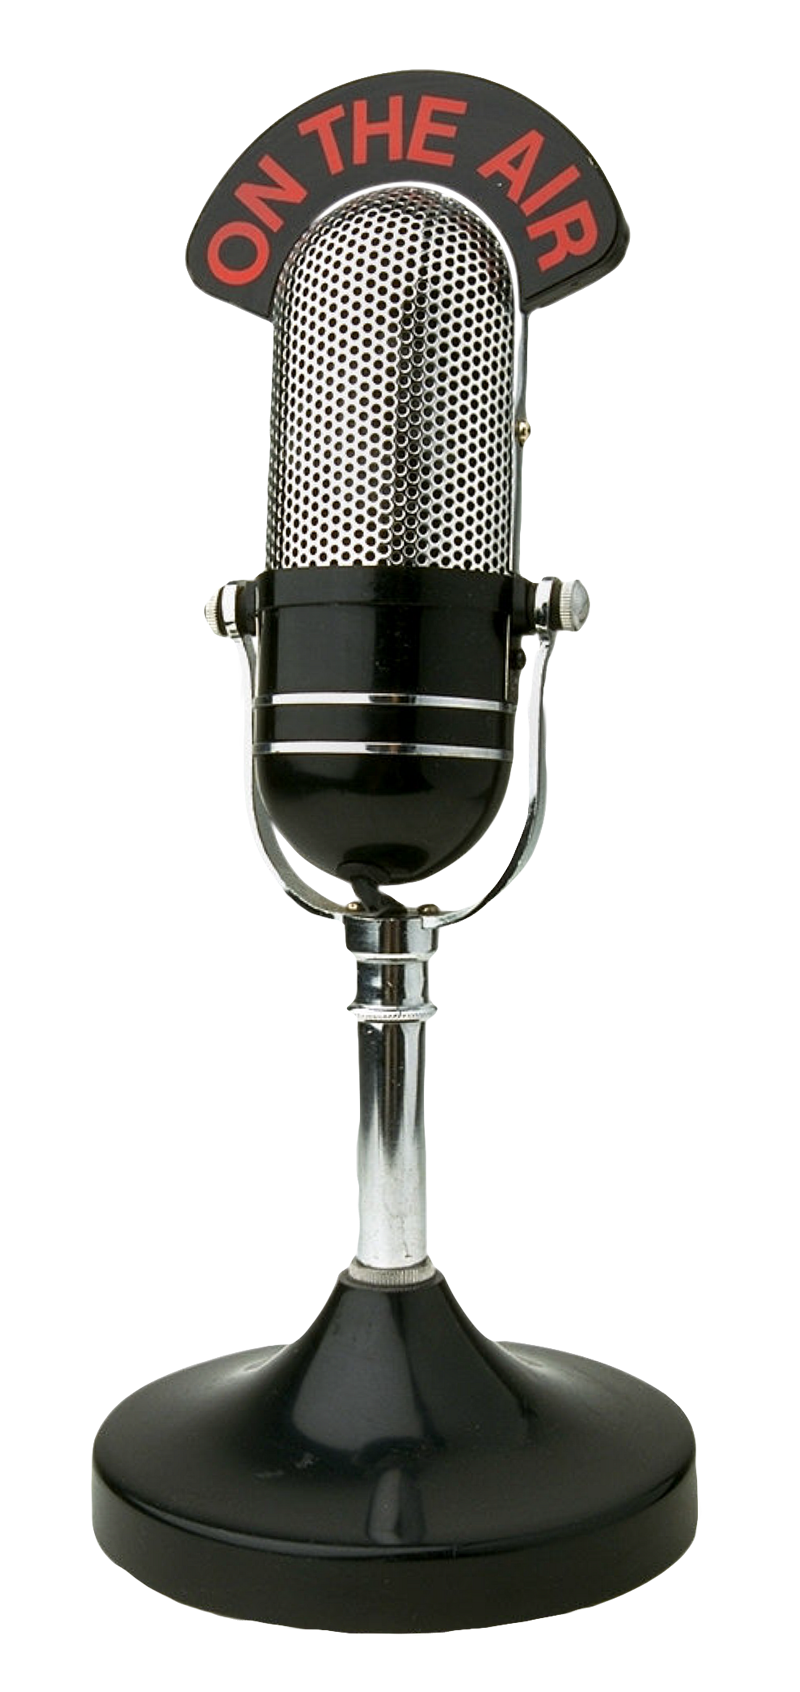 Old microphone png. Mic images pngpix transparent